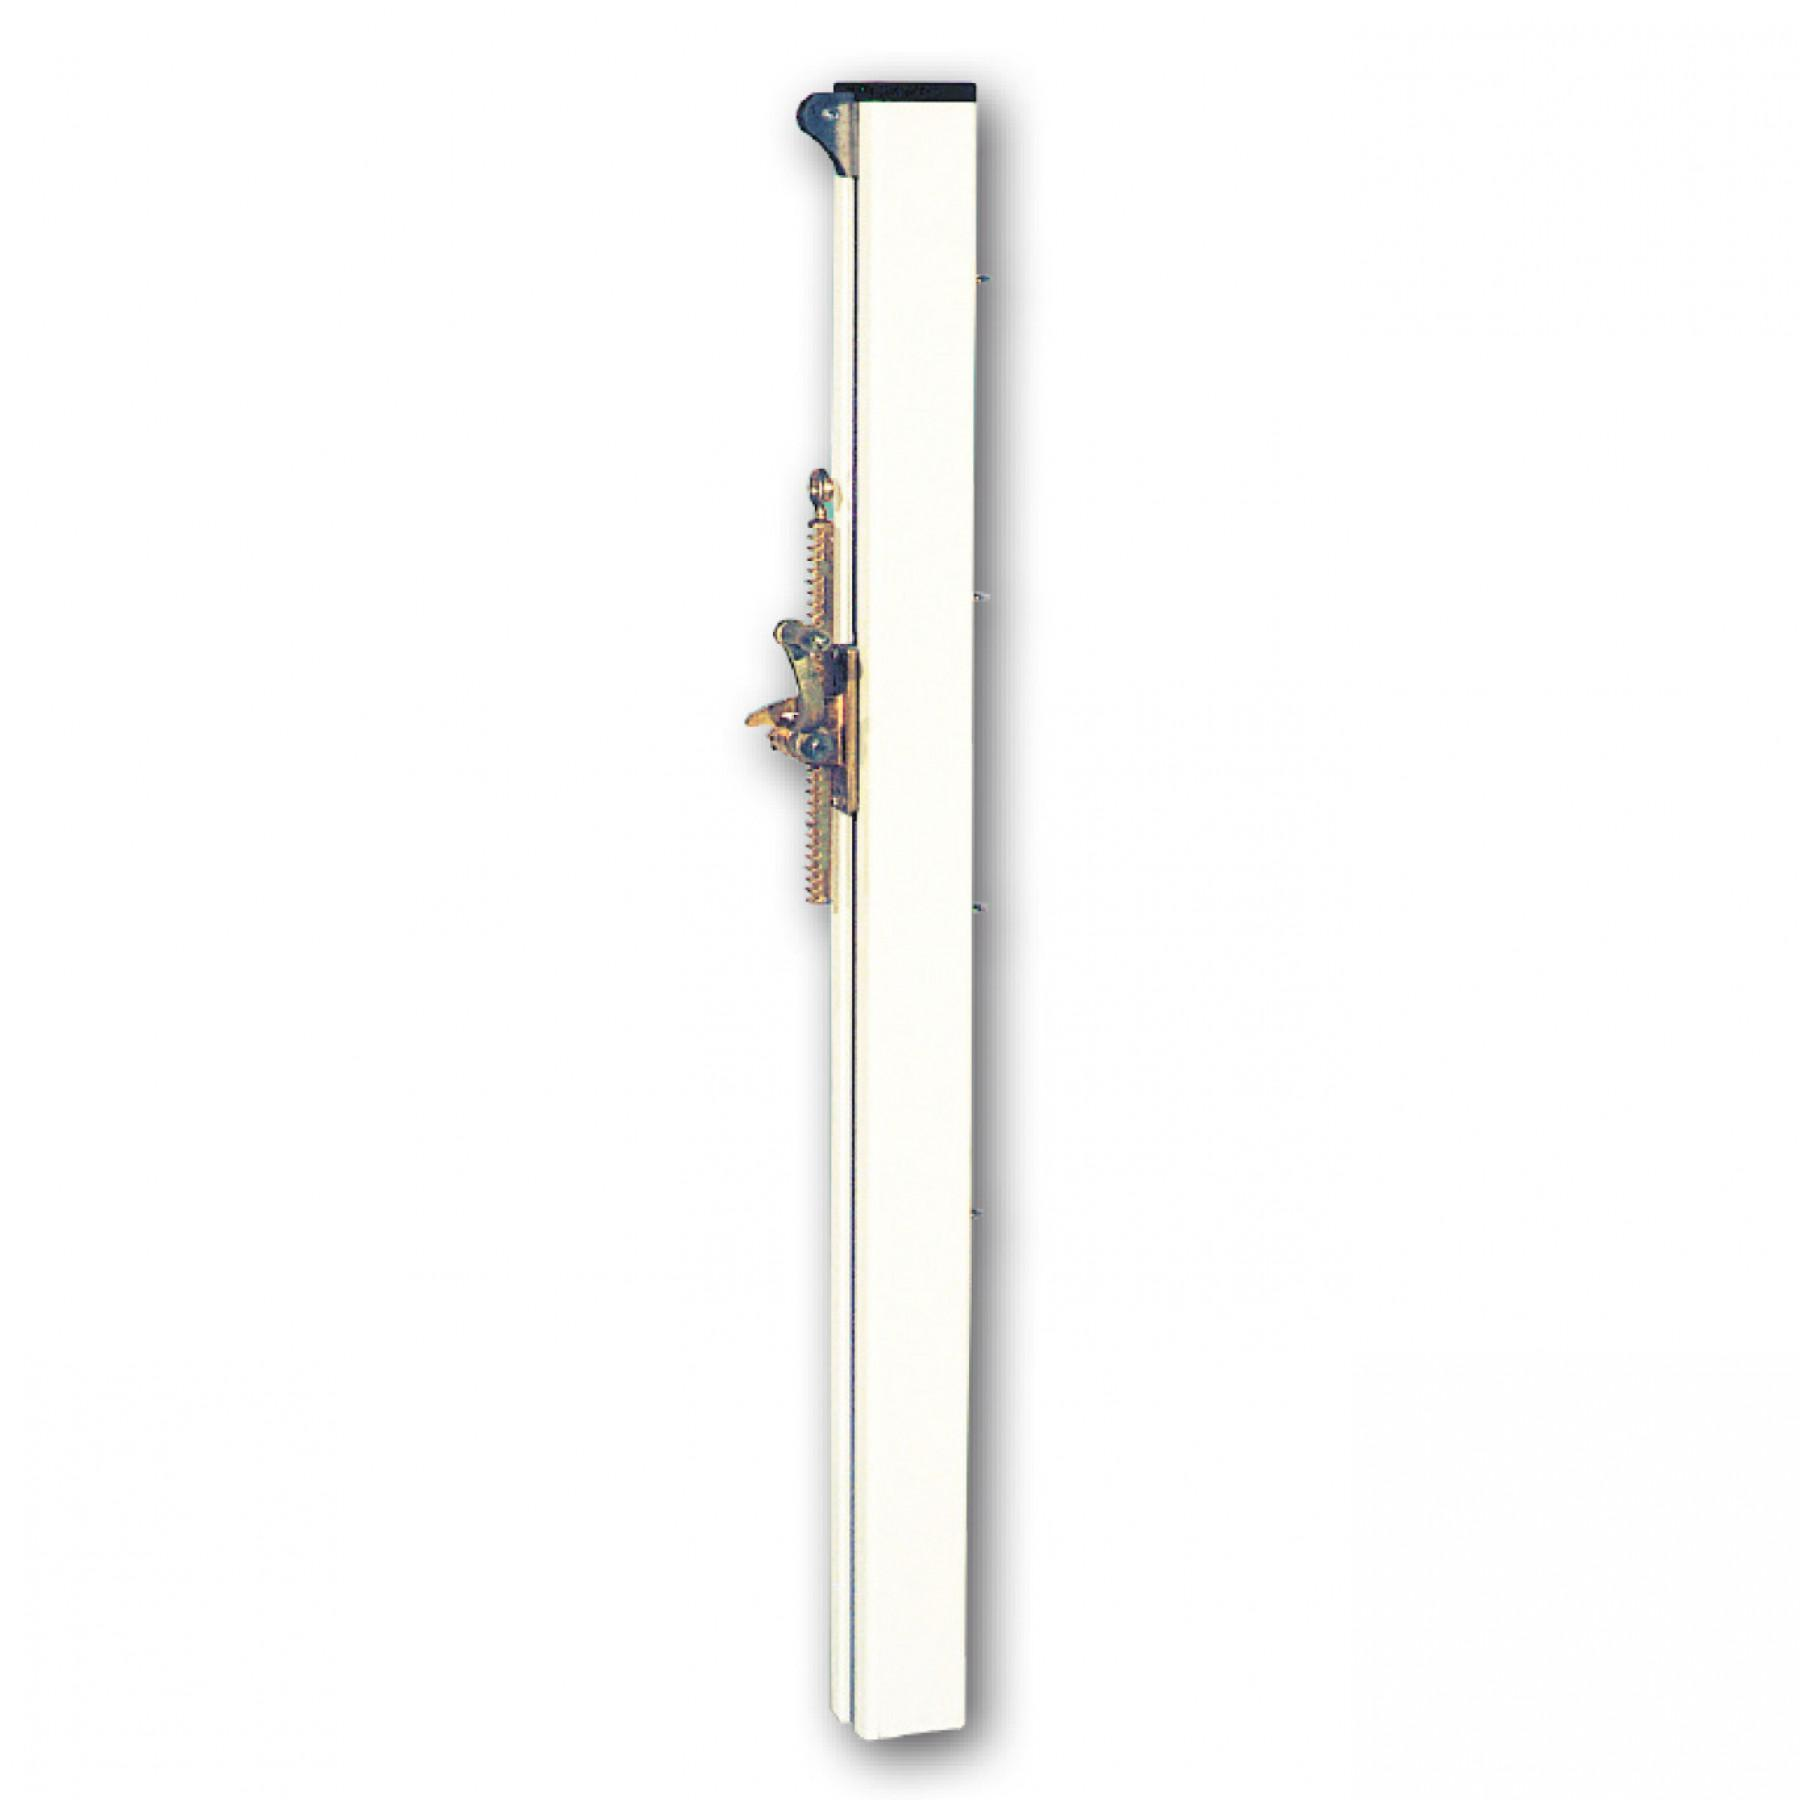 Pair of square aluminium tennis posts without sleeves Sporti France